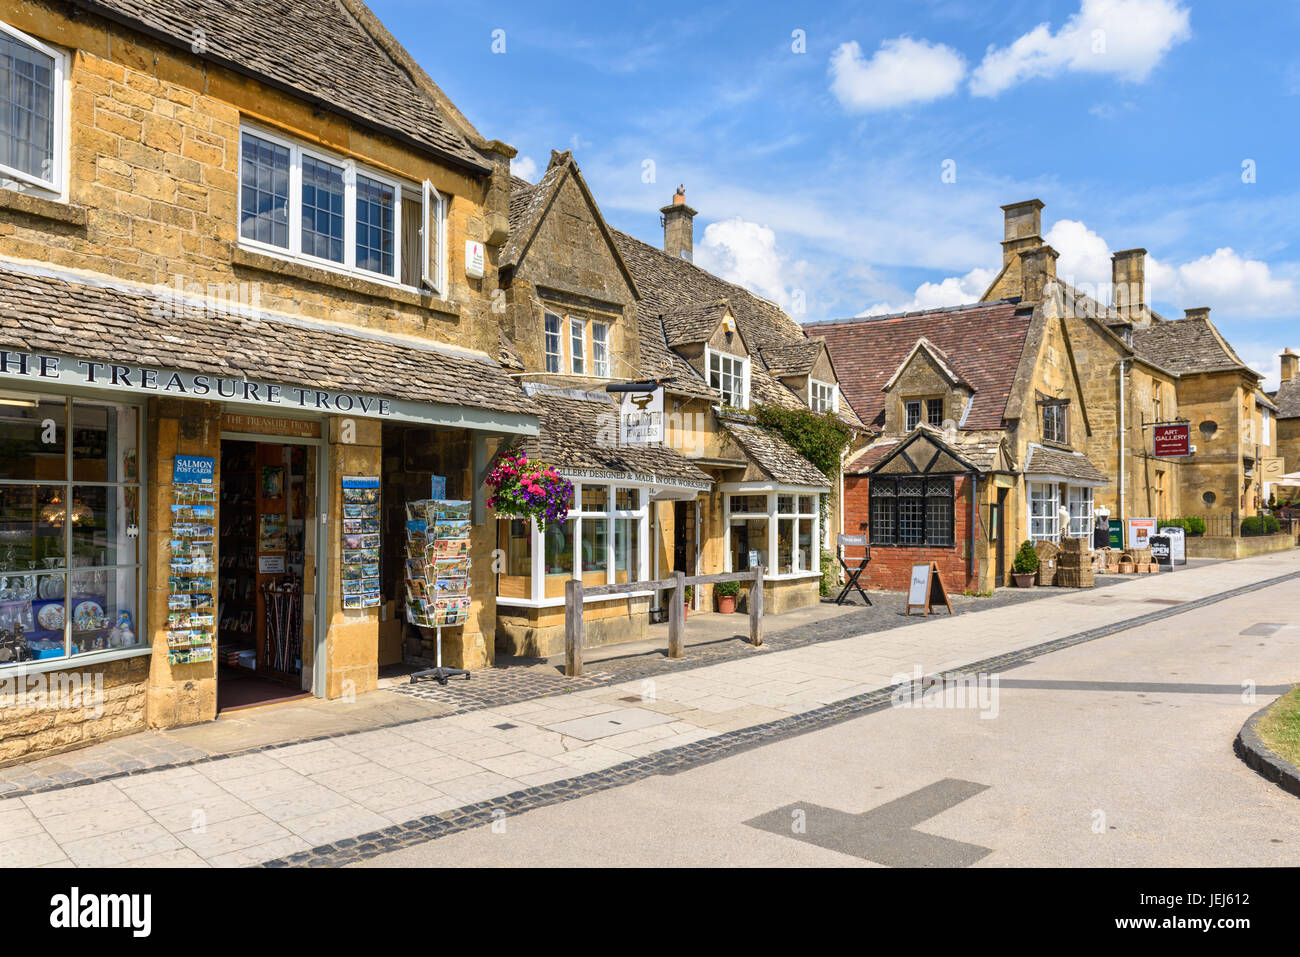 High Street Shops in Broadway, Cotswolds, UK - Stock Image